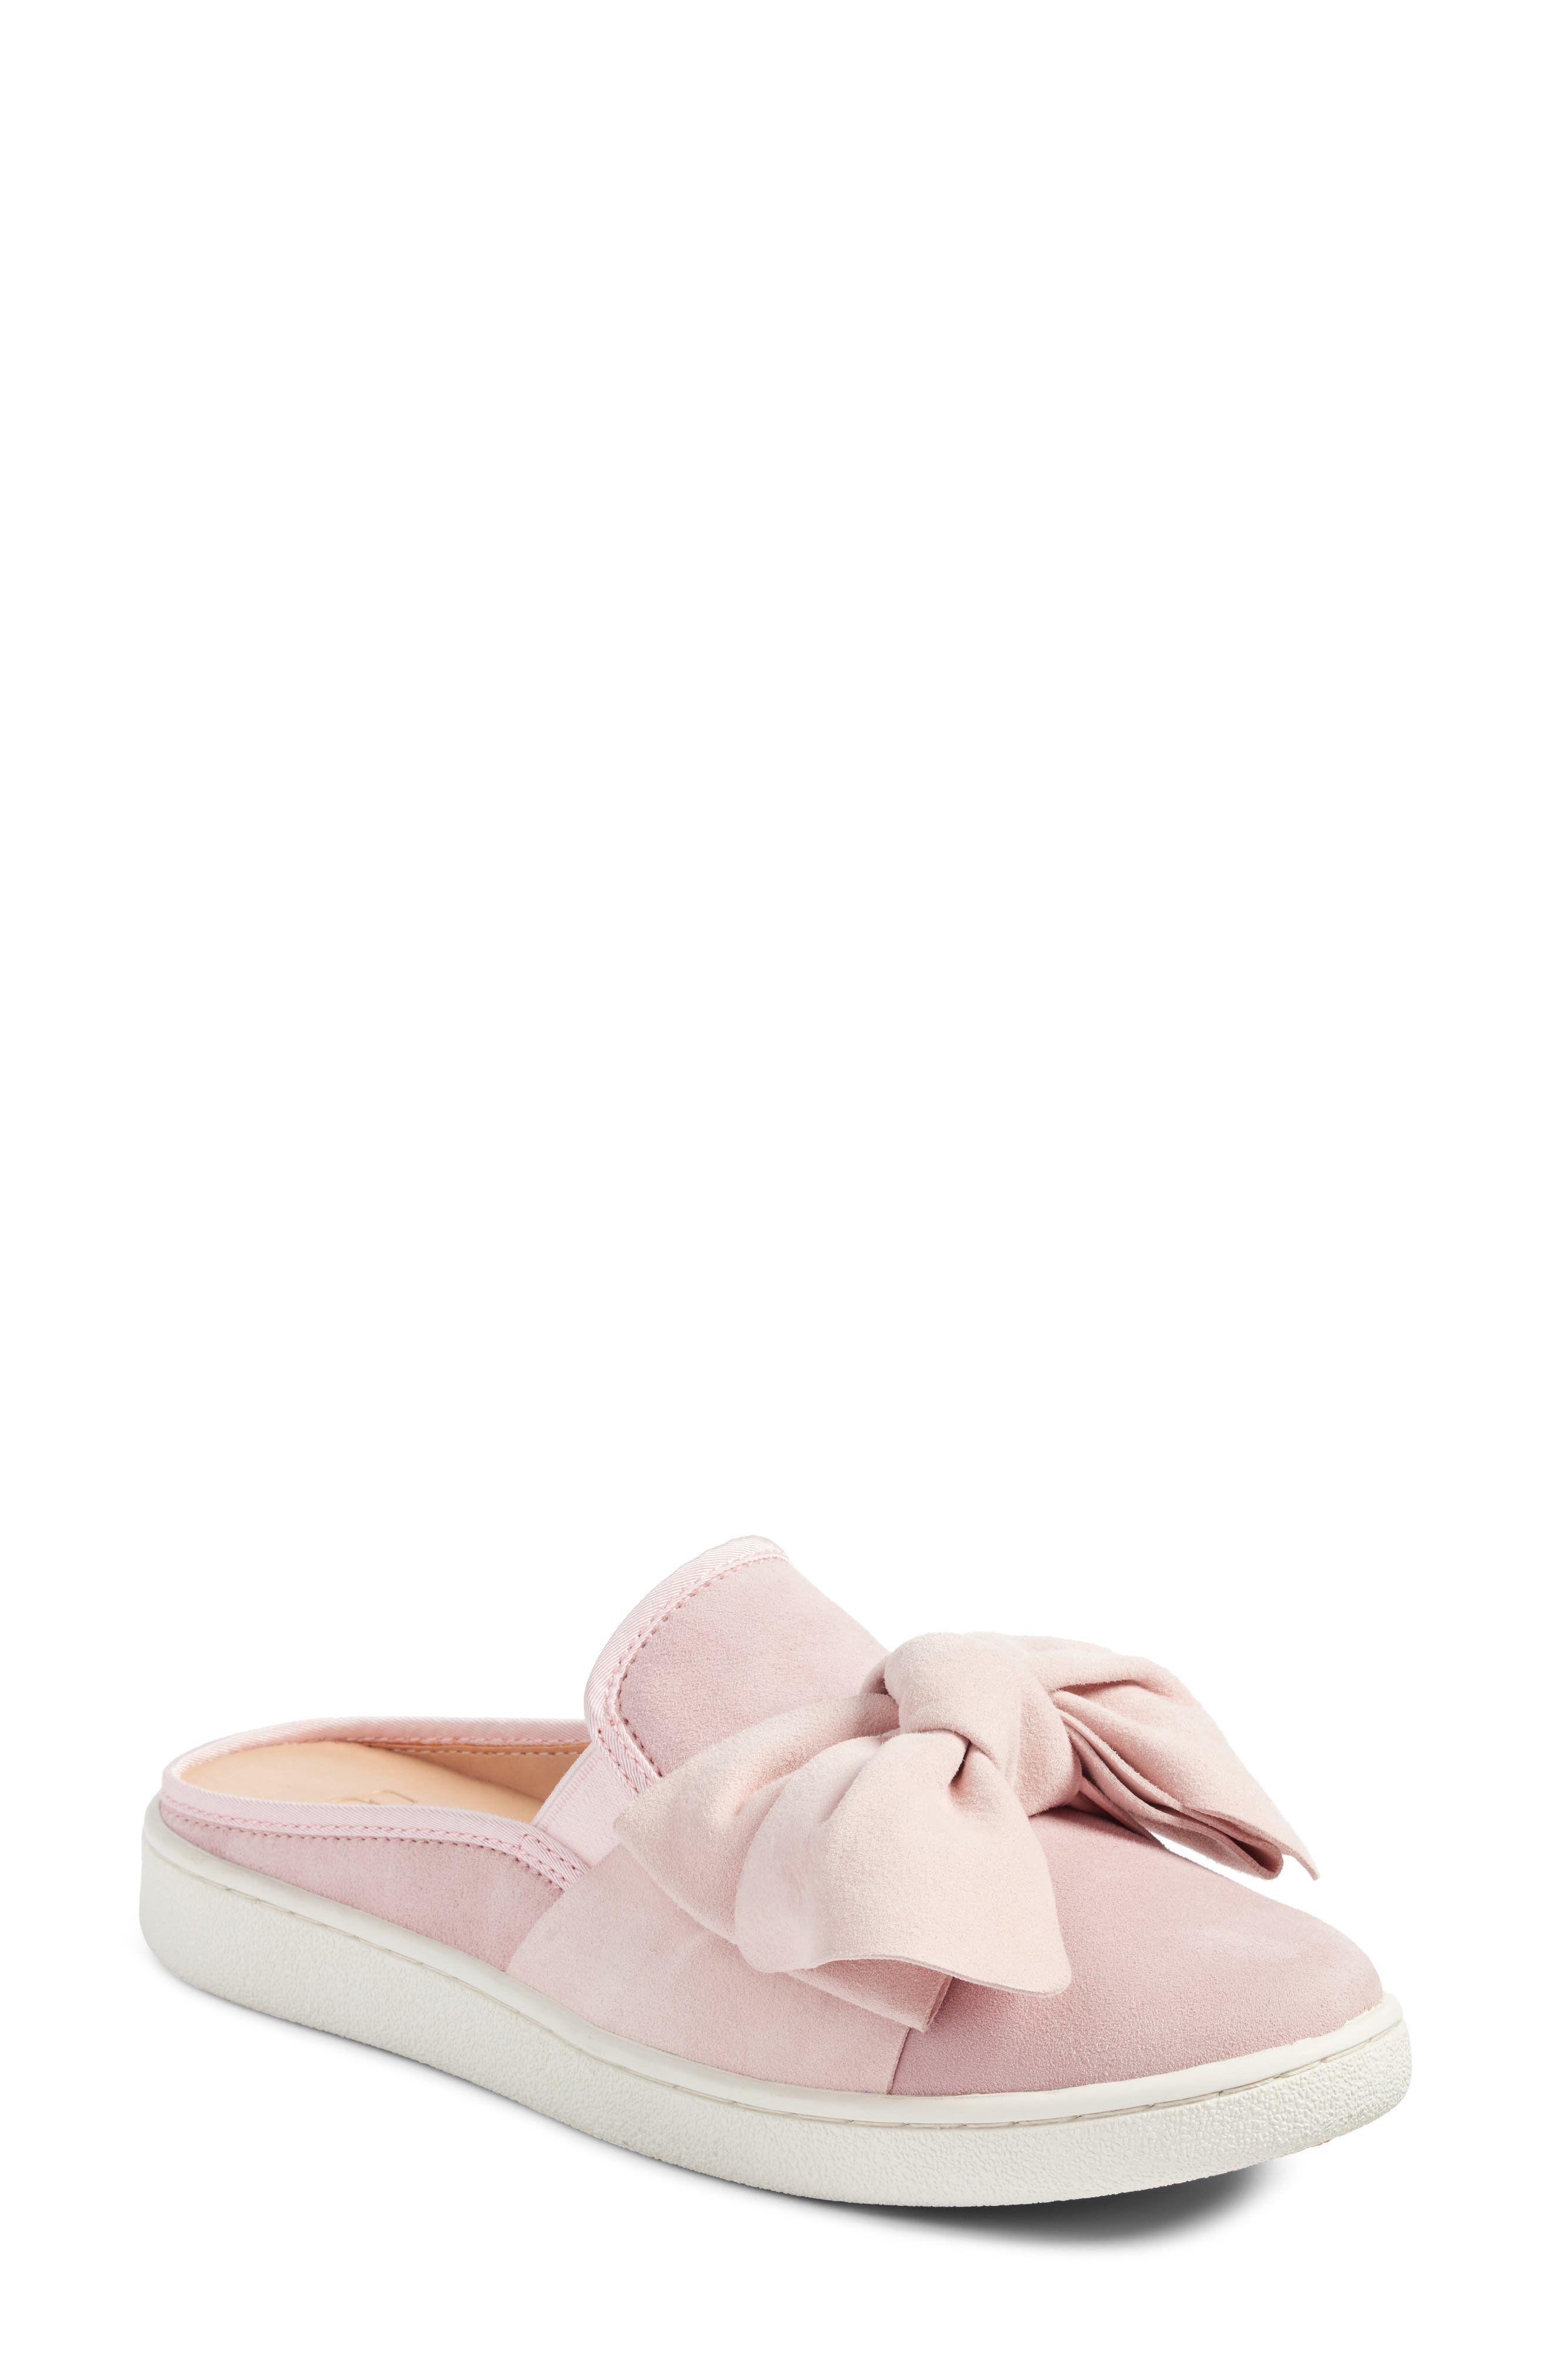 Luci Bow Sneaker Mule,                         Main,                         color, Seashell Pink Suede